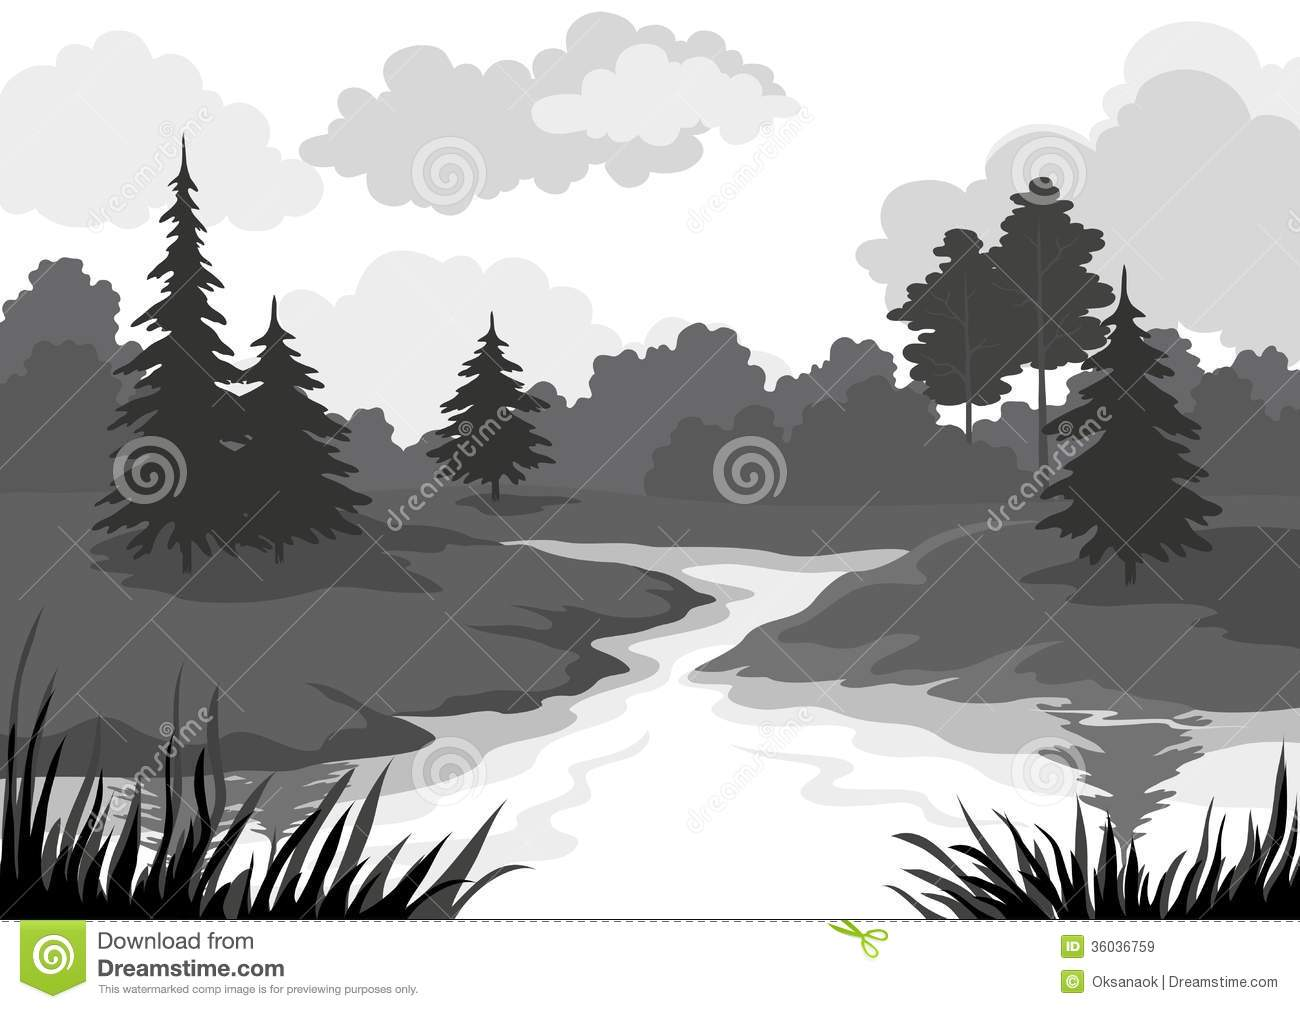 Mountain with trees and road clipart black and white banner transparent library 10+ River Clipart Black And White   ClipartLook banner transparent library